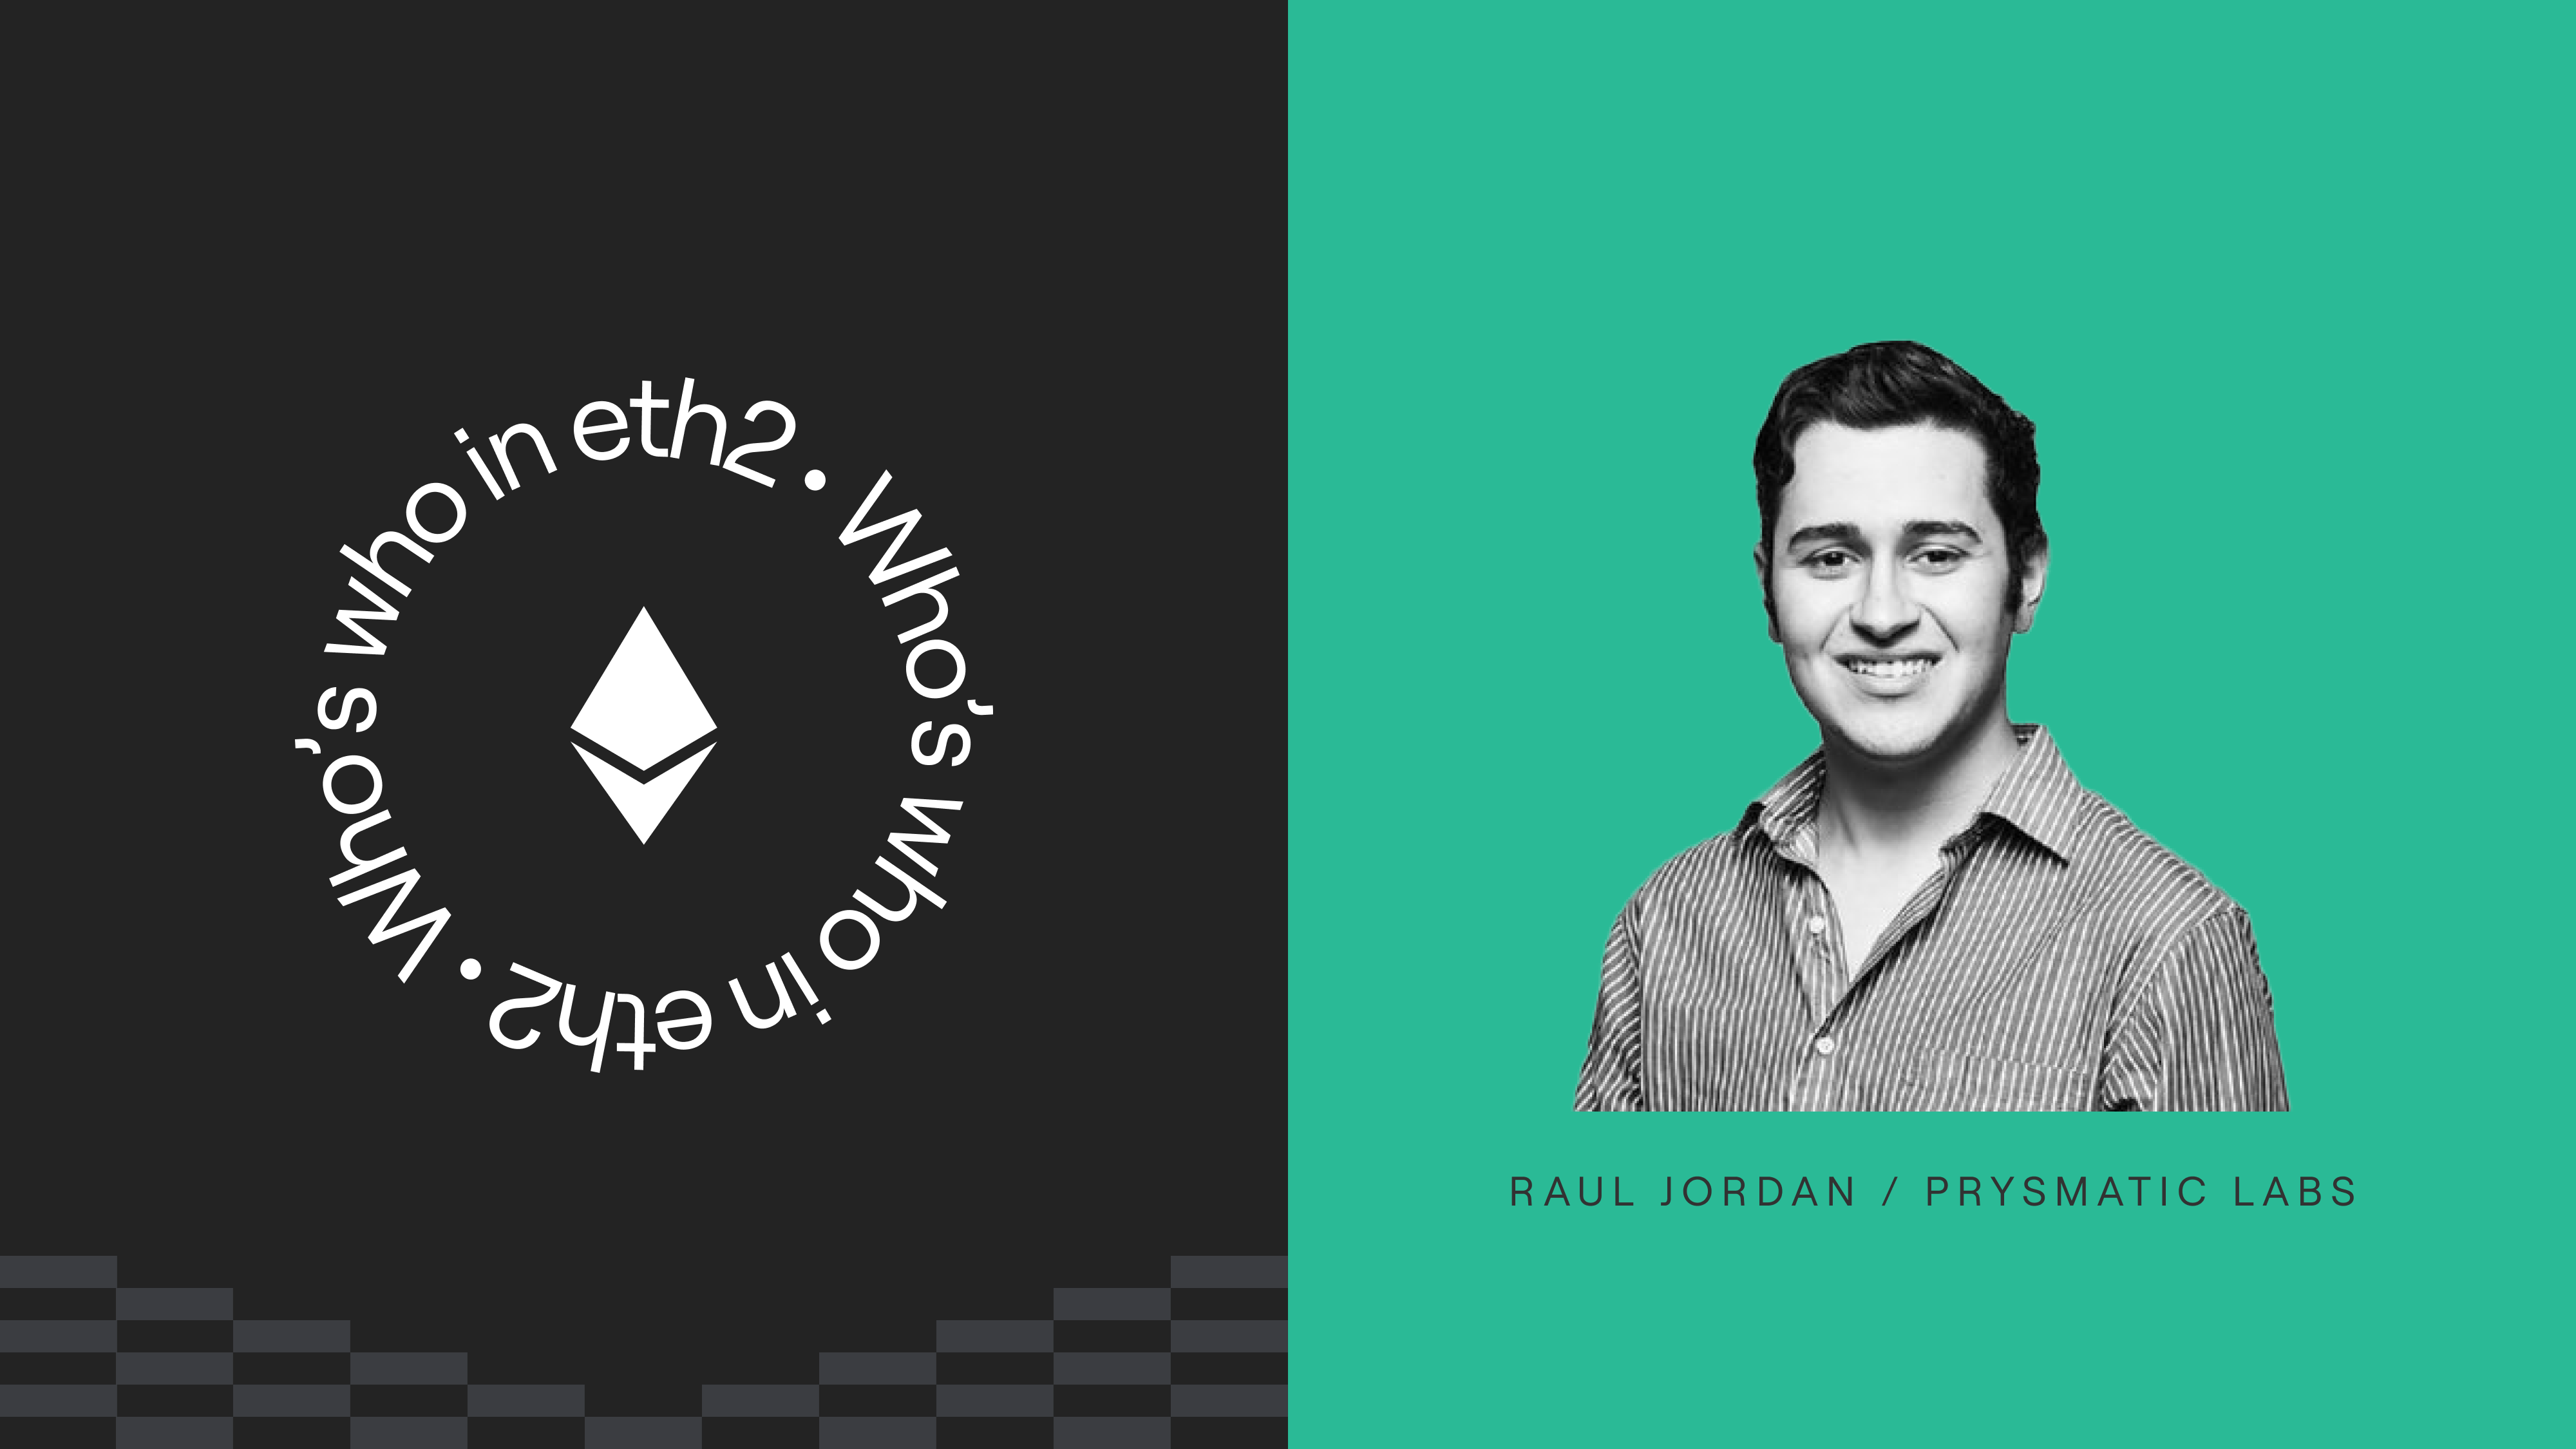 Who's who in eth2: Raul Jordan from Prysmatic Labs